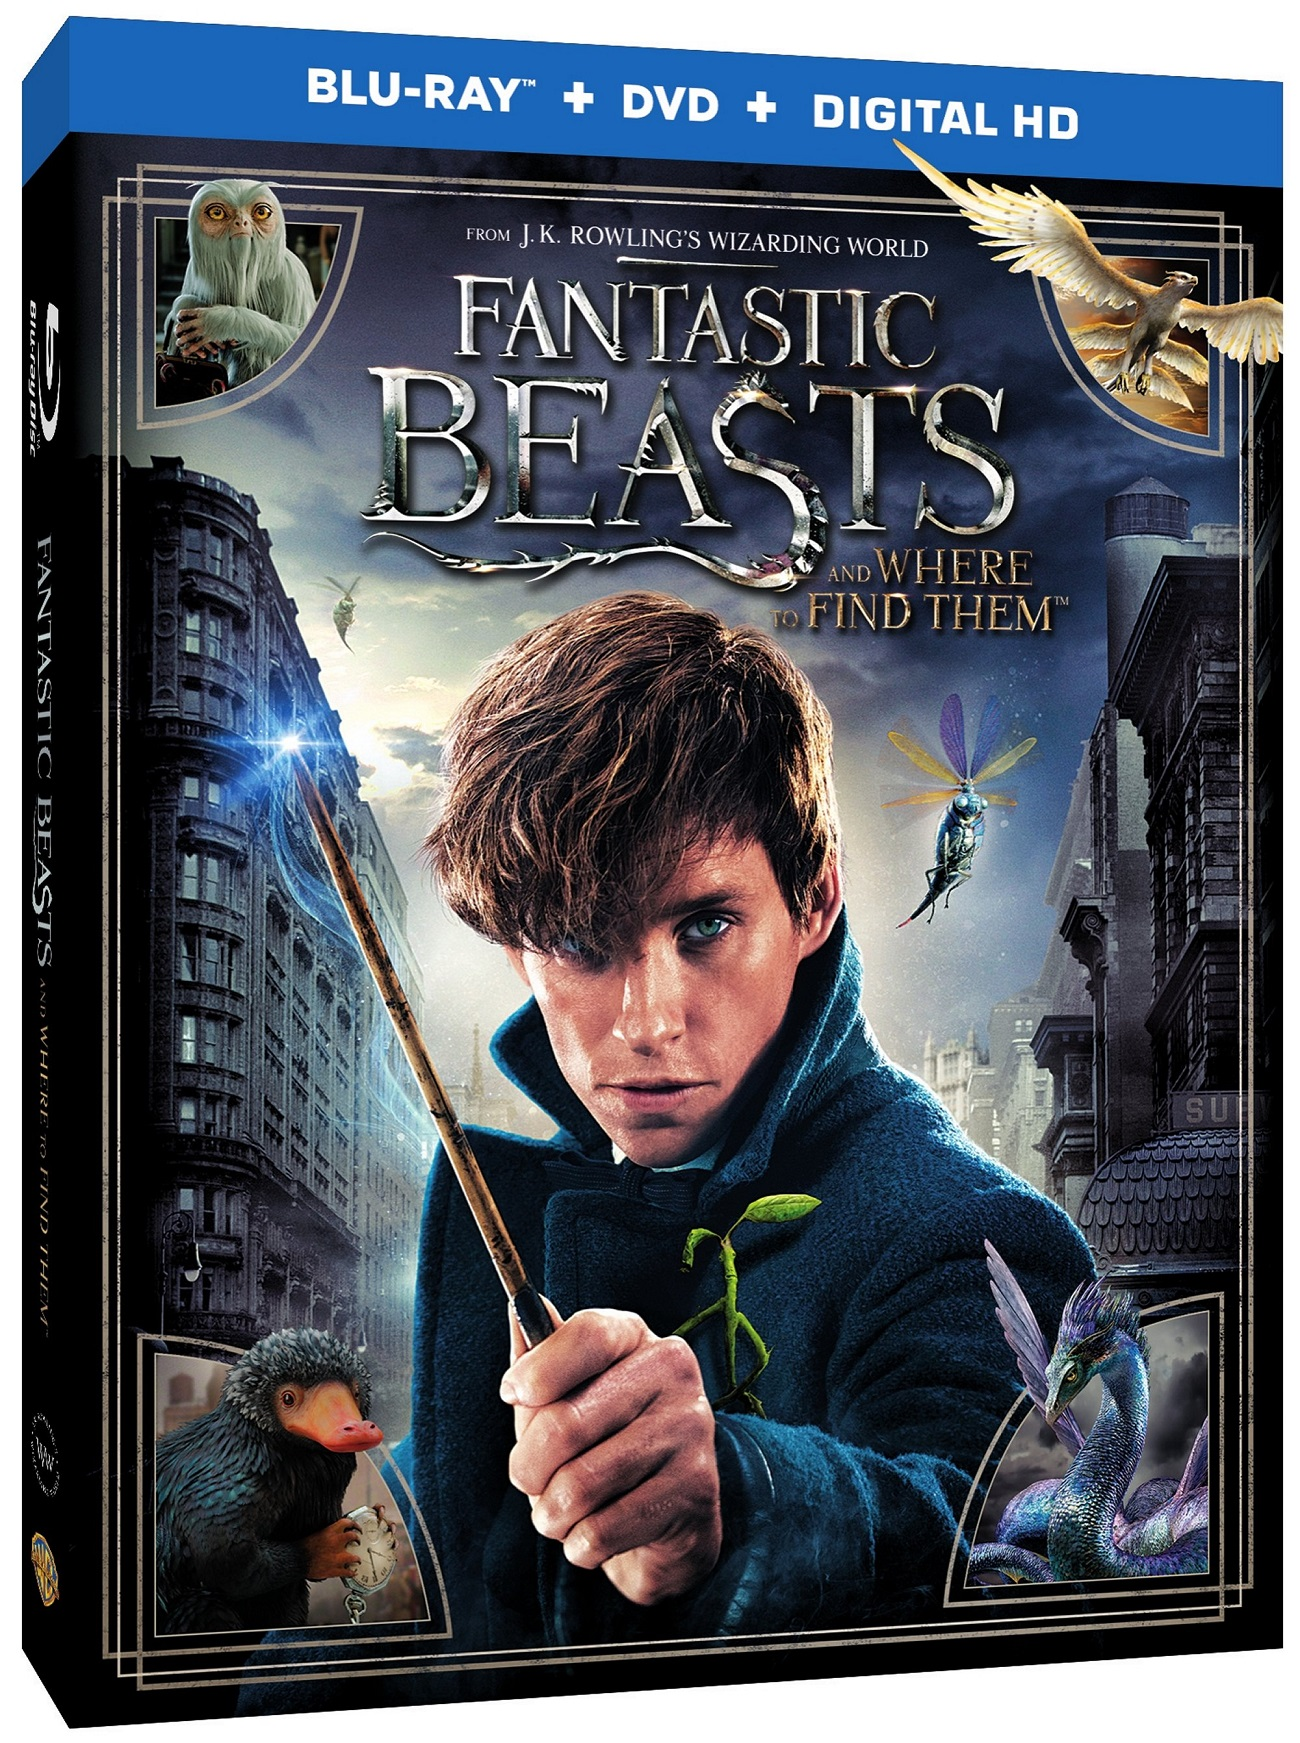 Fantastic Beasts Blu-Ray